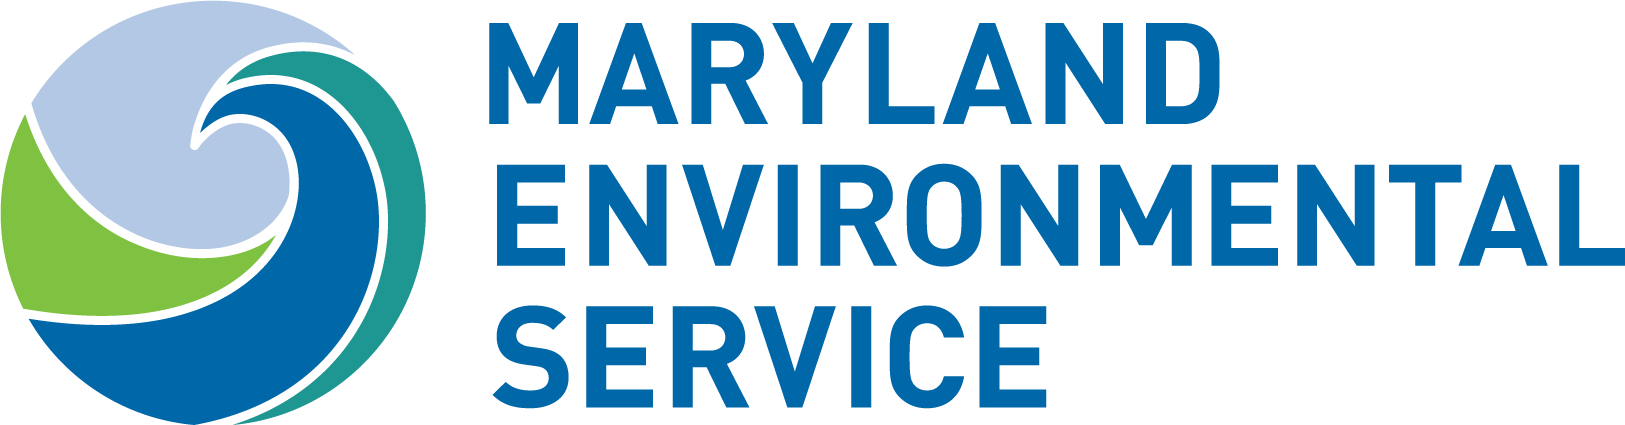 Maryland Environmental Service (MES)